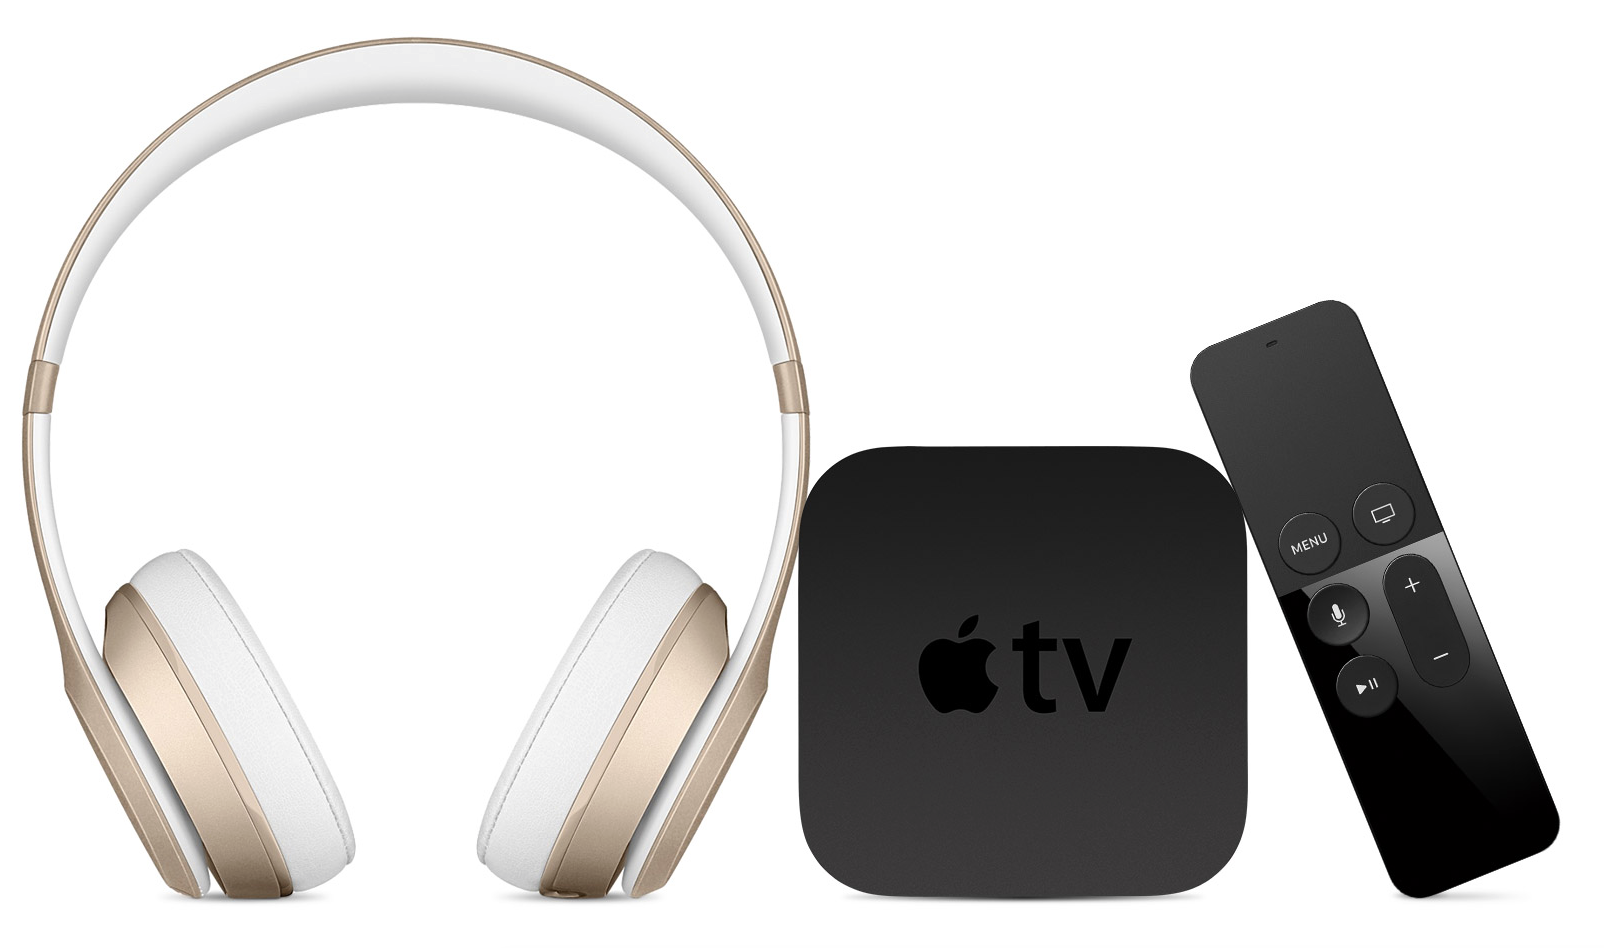 How To Use Bluetooth Devices With Your 4th Generation Apple Tv Allgaier Consulting Llc